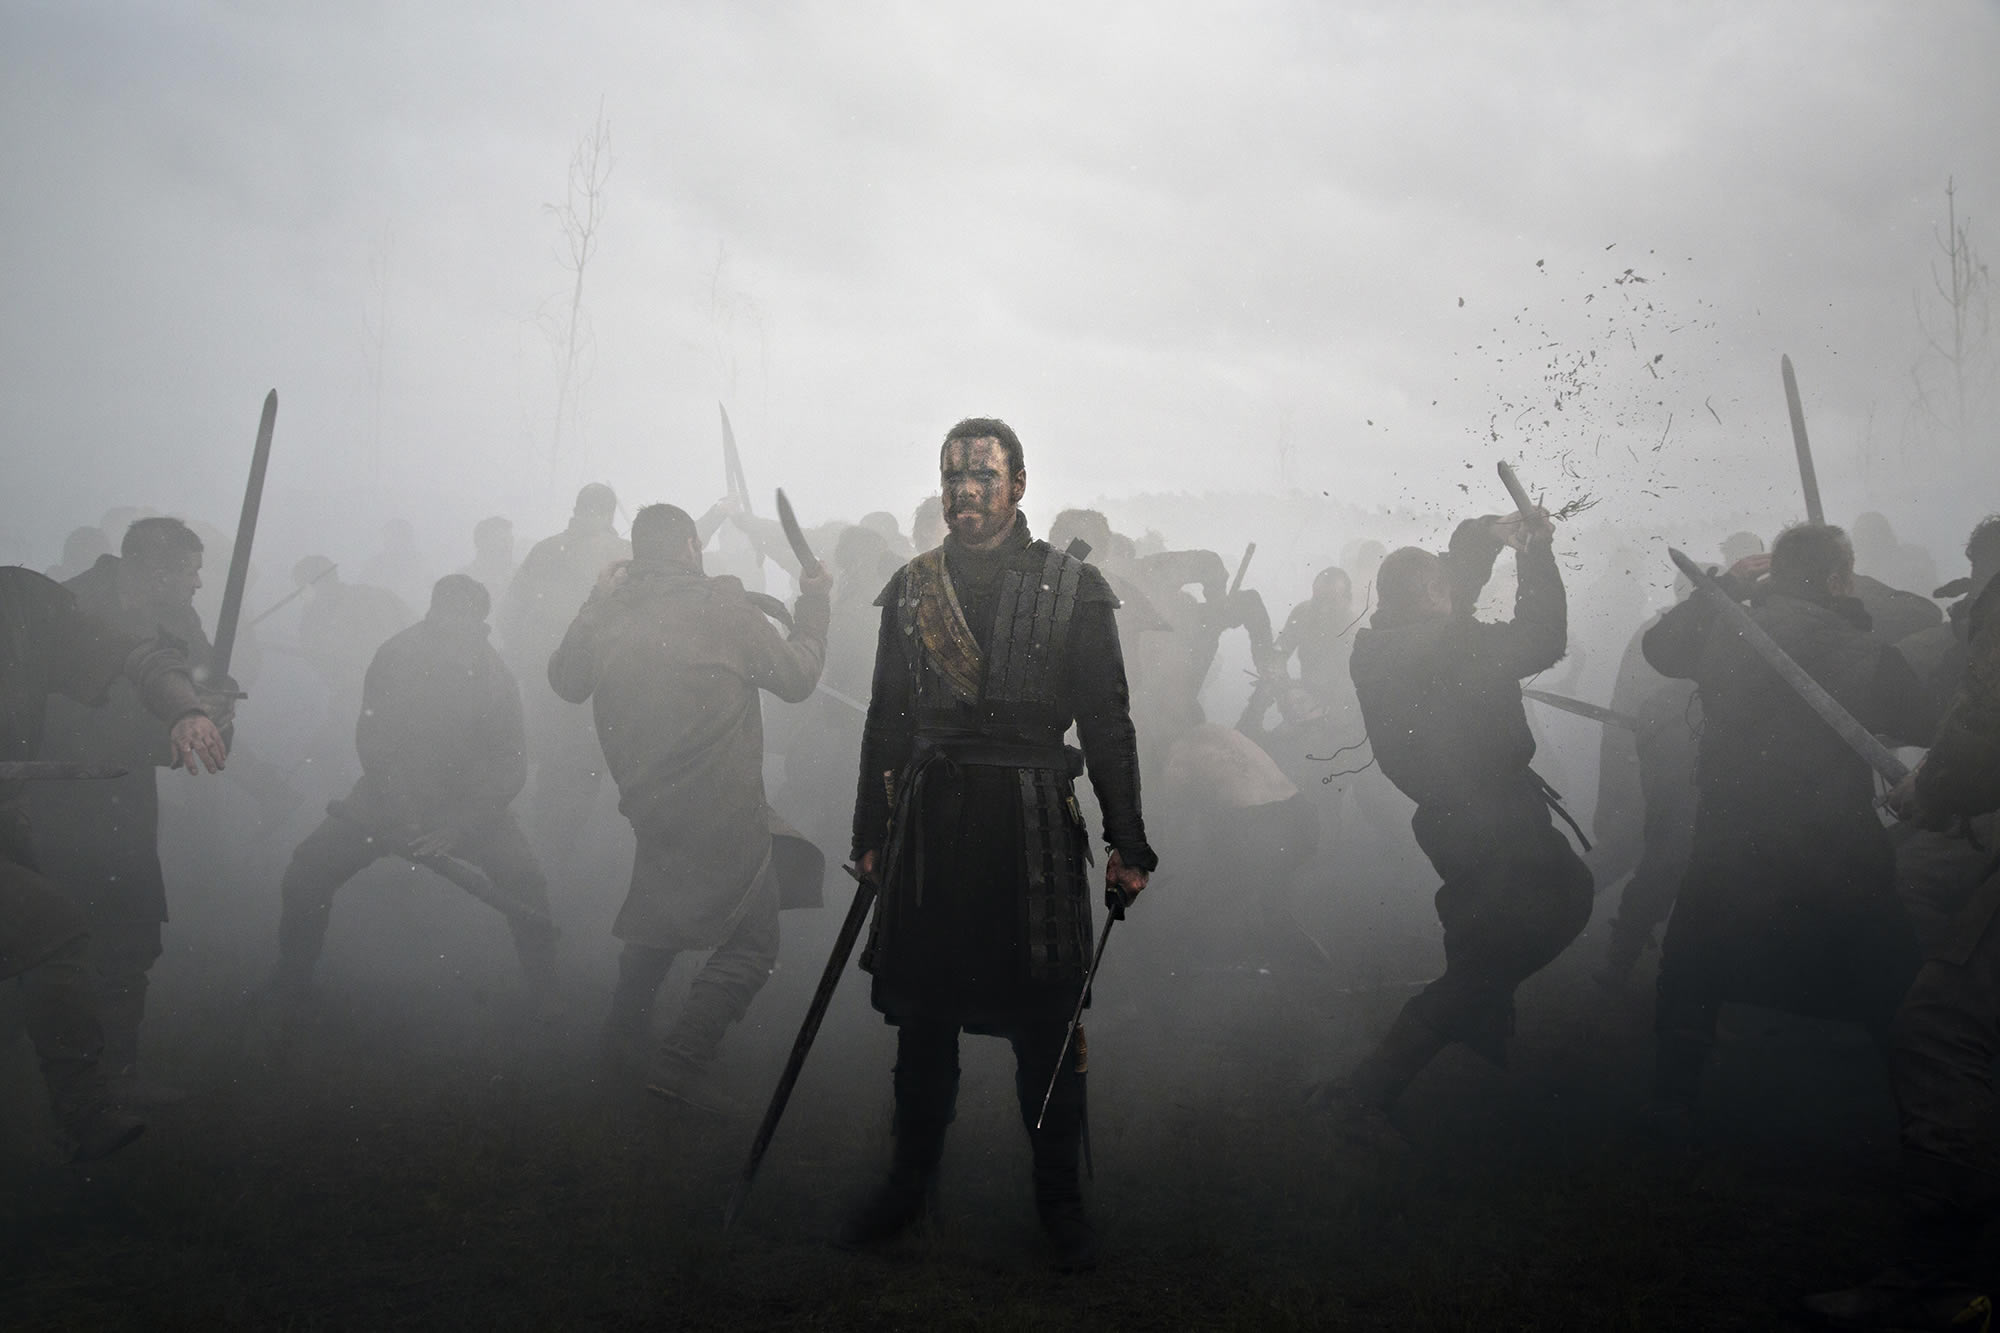 macbeth 2015, smoky photographic scene with soldiers